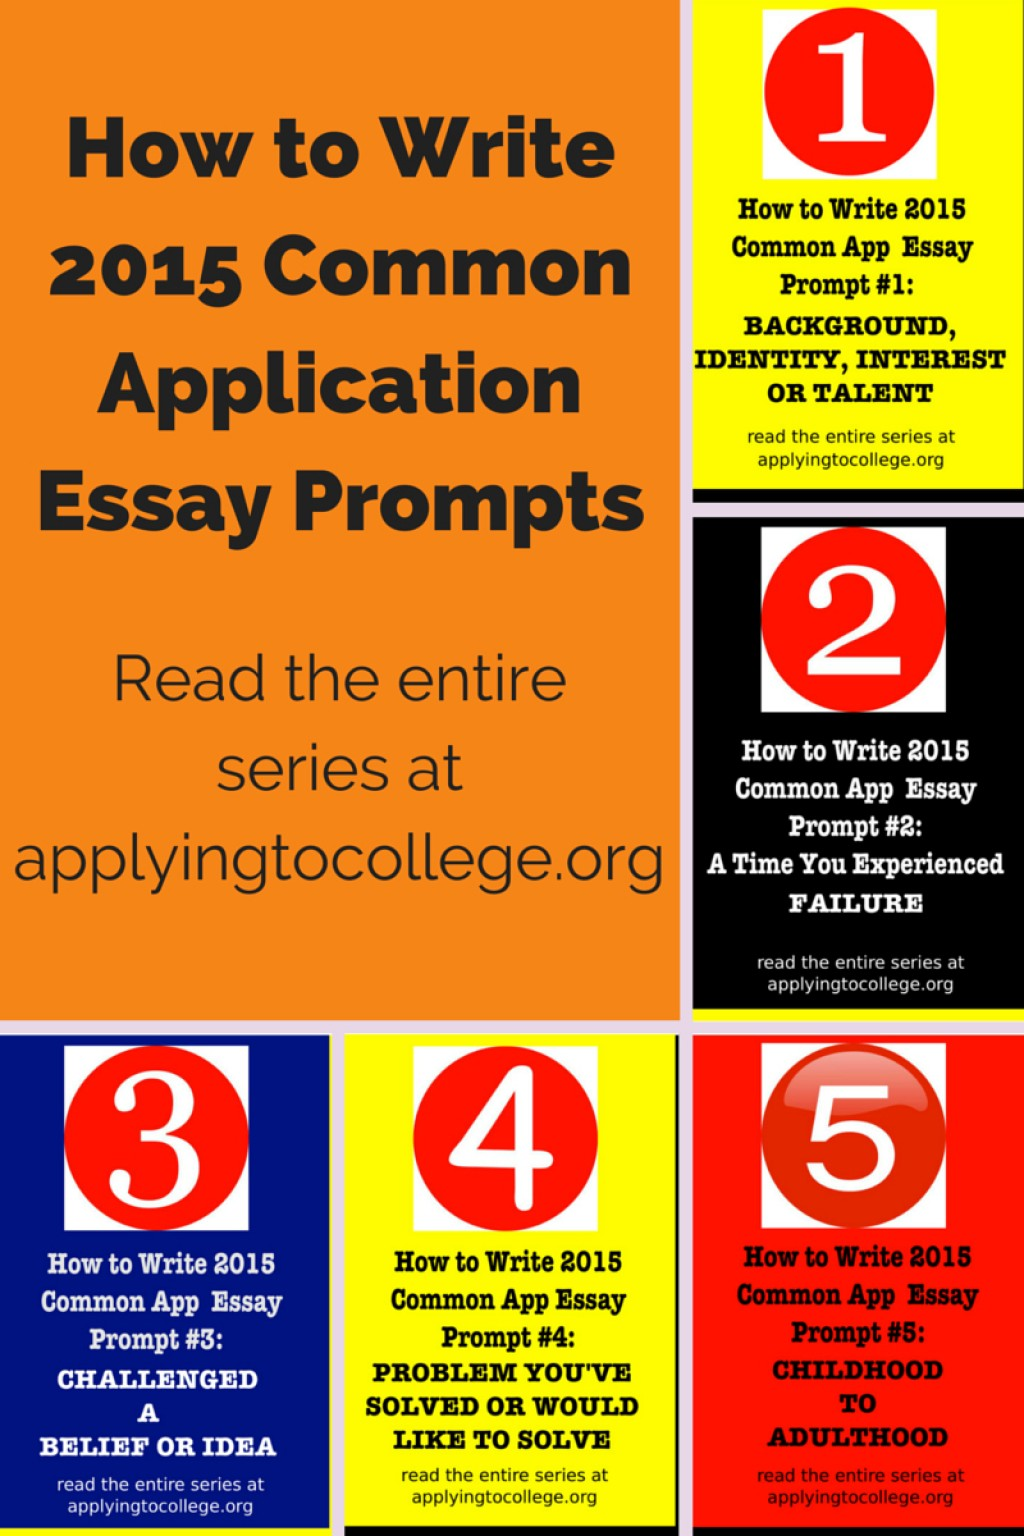 011 Essay Example Common App Prompt How To Write Application Prompts Unusual Examples 6 1 Sample Large